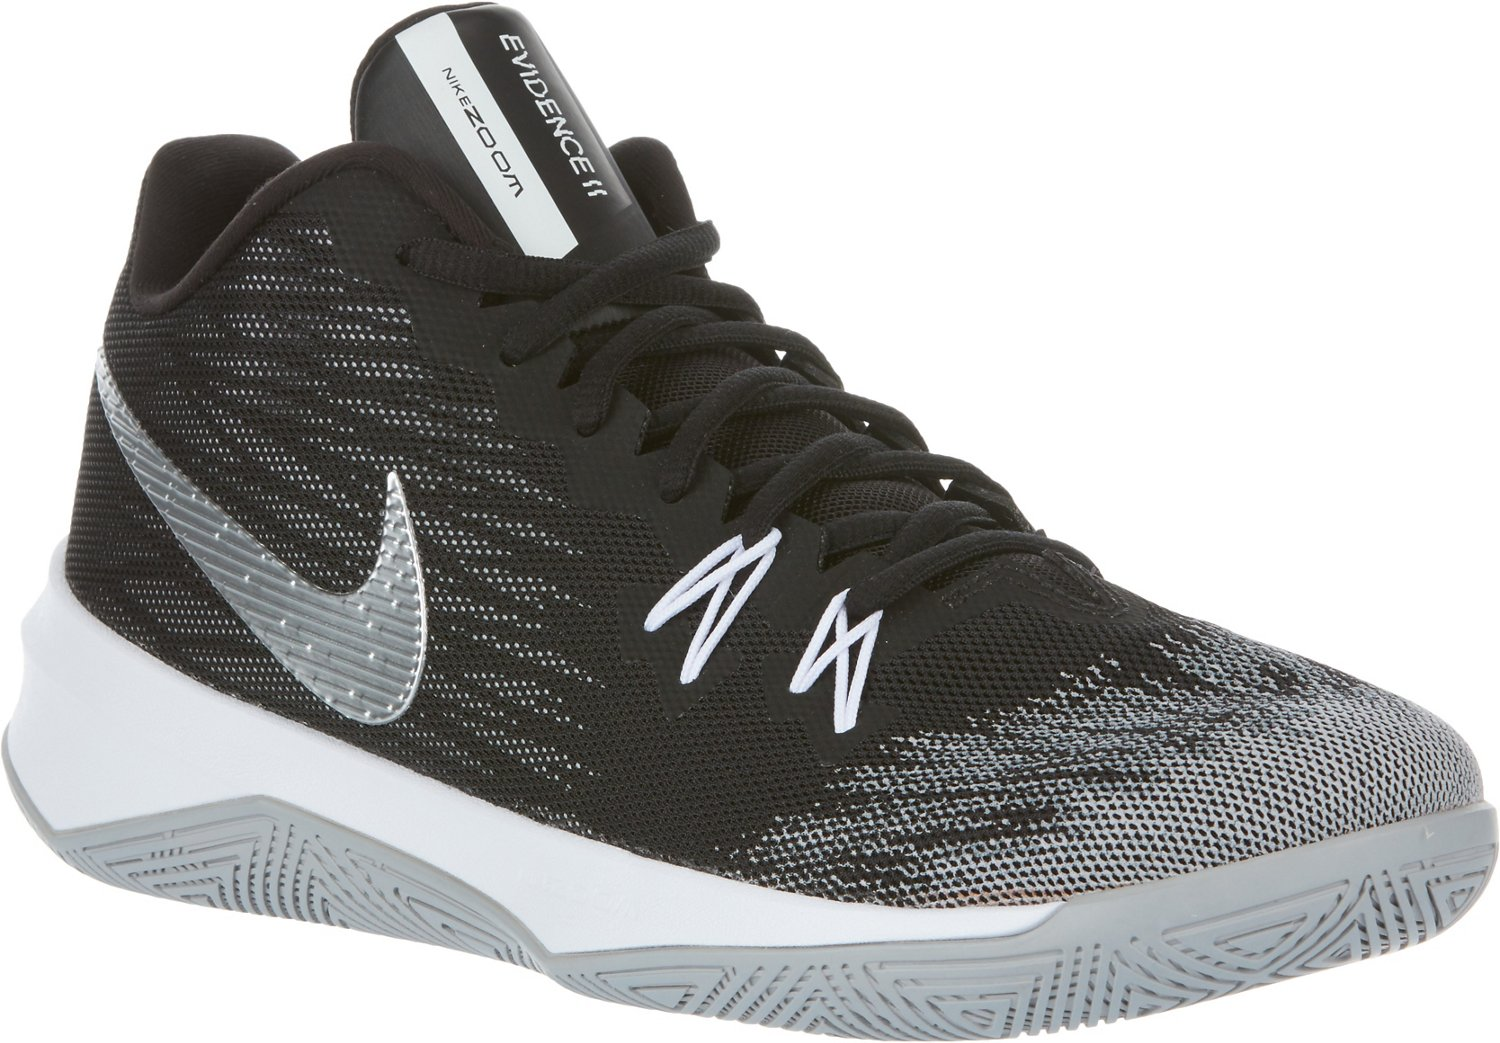 Nike Men's Zoom Evidence II Basketball Shoes - view number 2